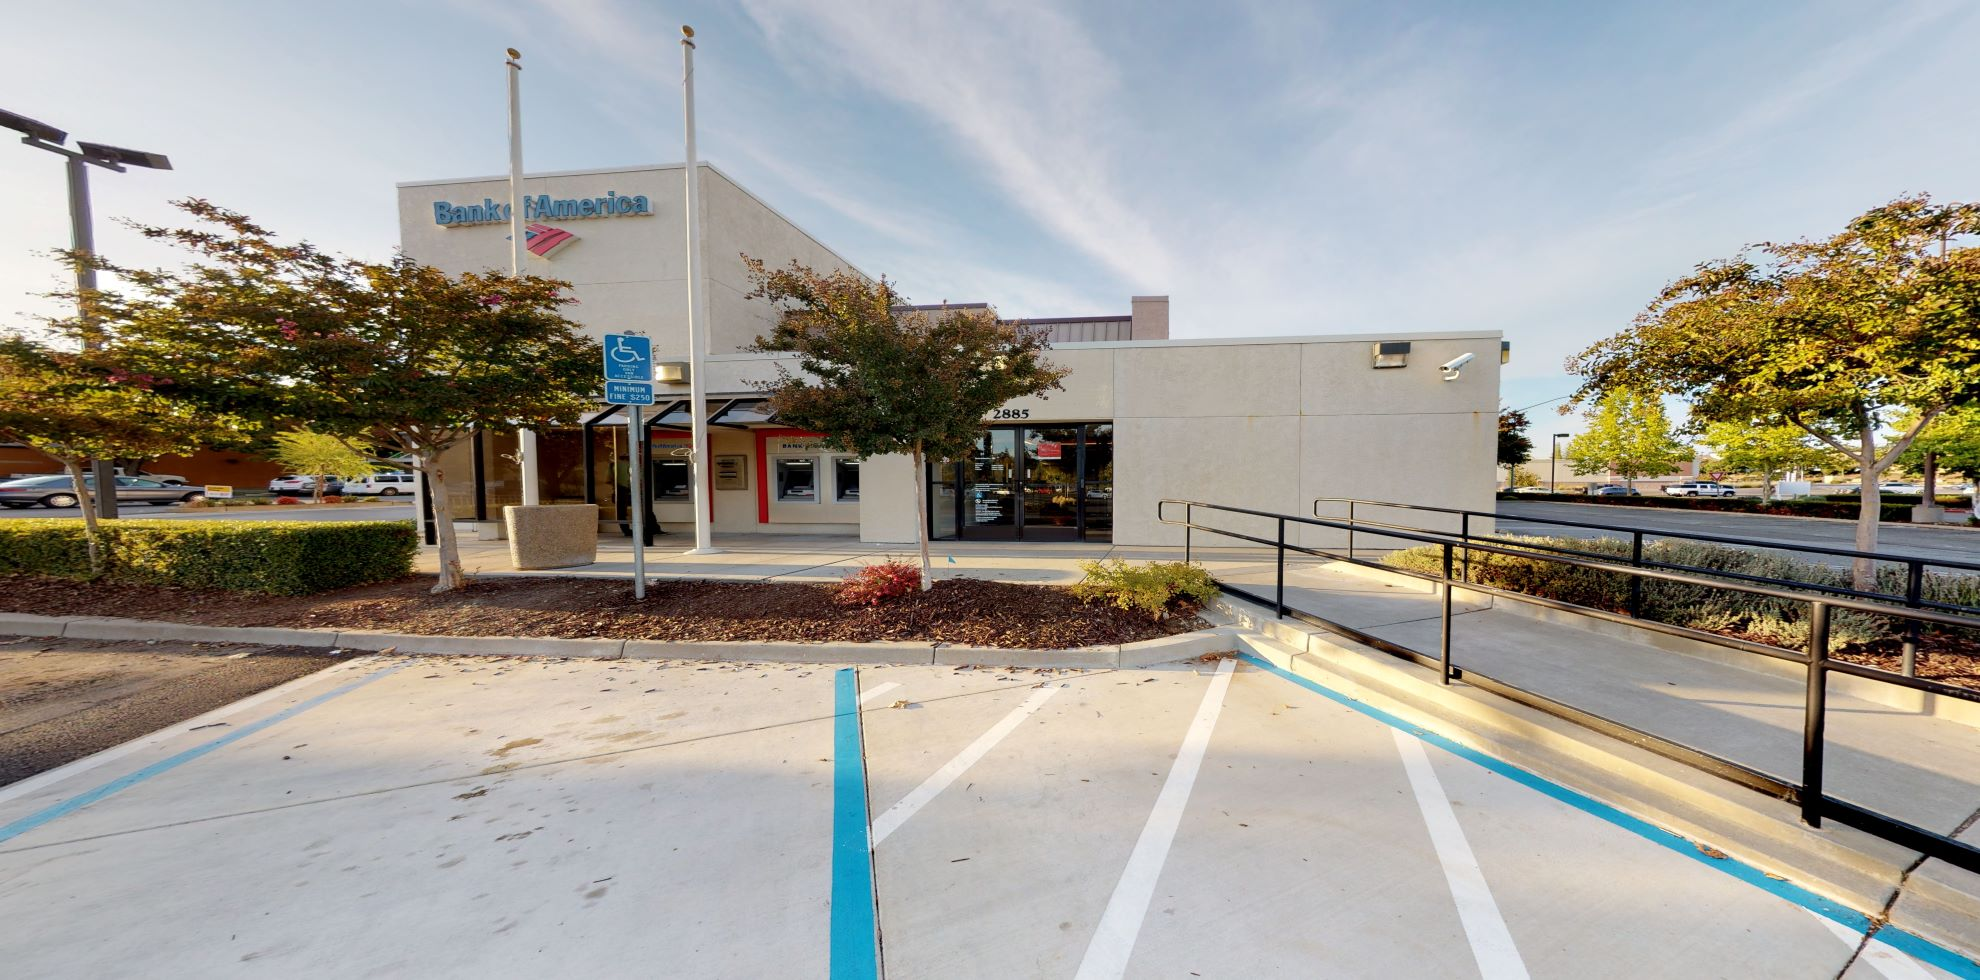 Bank of America financial center with walk-up ATM | 2885 Bell Rd, Auburn, CA 95603